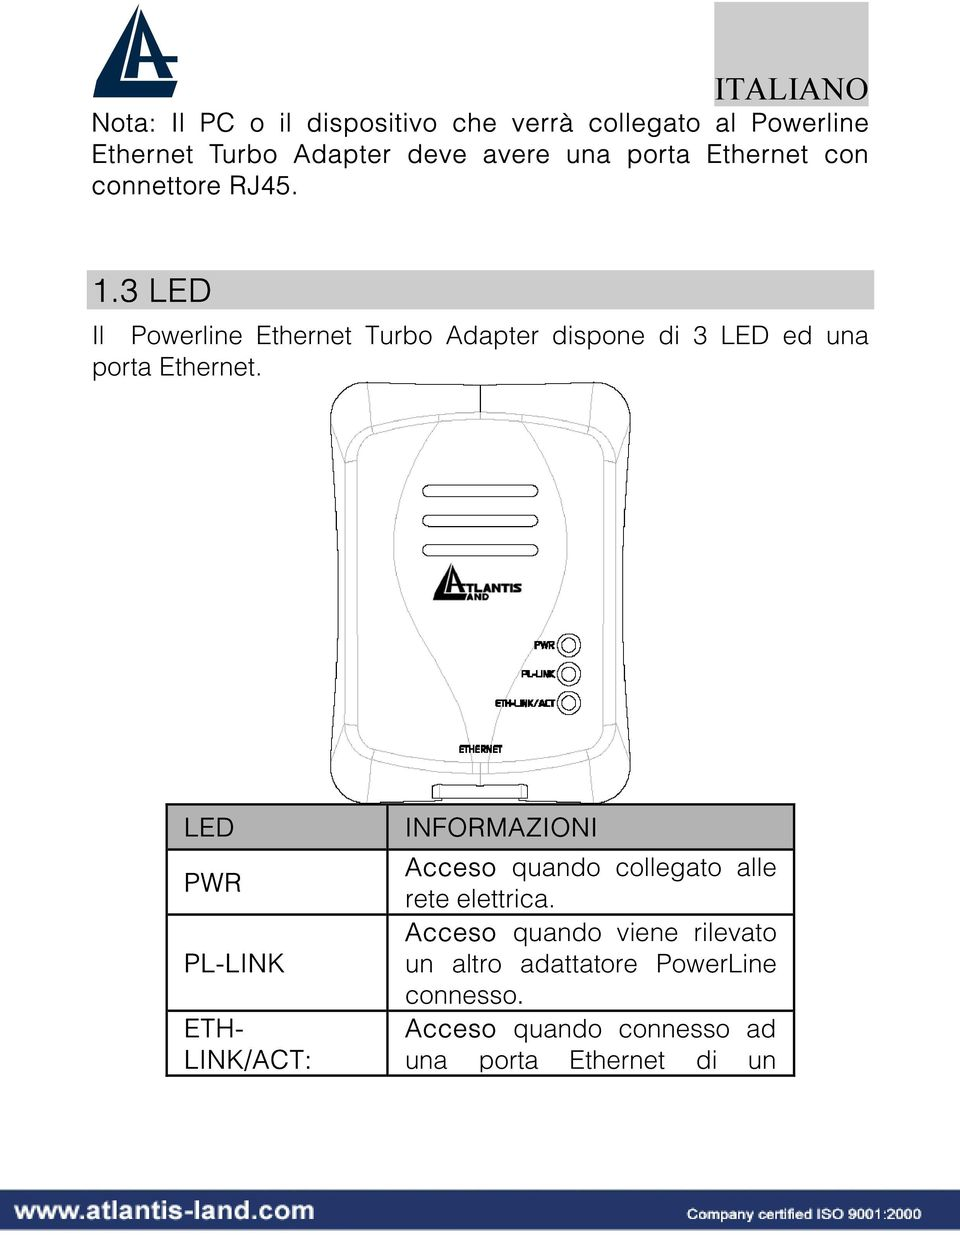 3 LED Il Powerline Ethernet Turbo Adapter dispone di 3 LED ed una porta Ethernet.